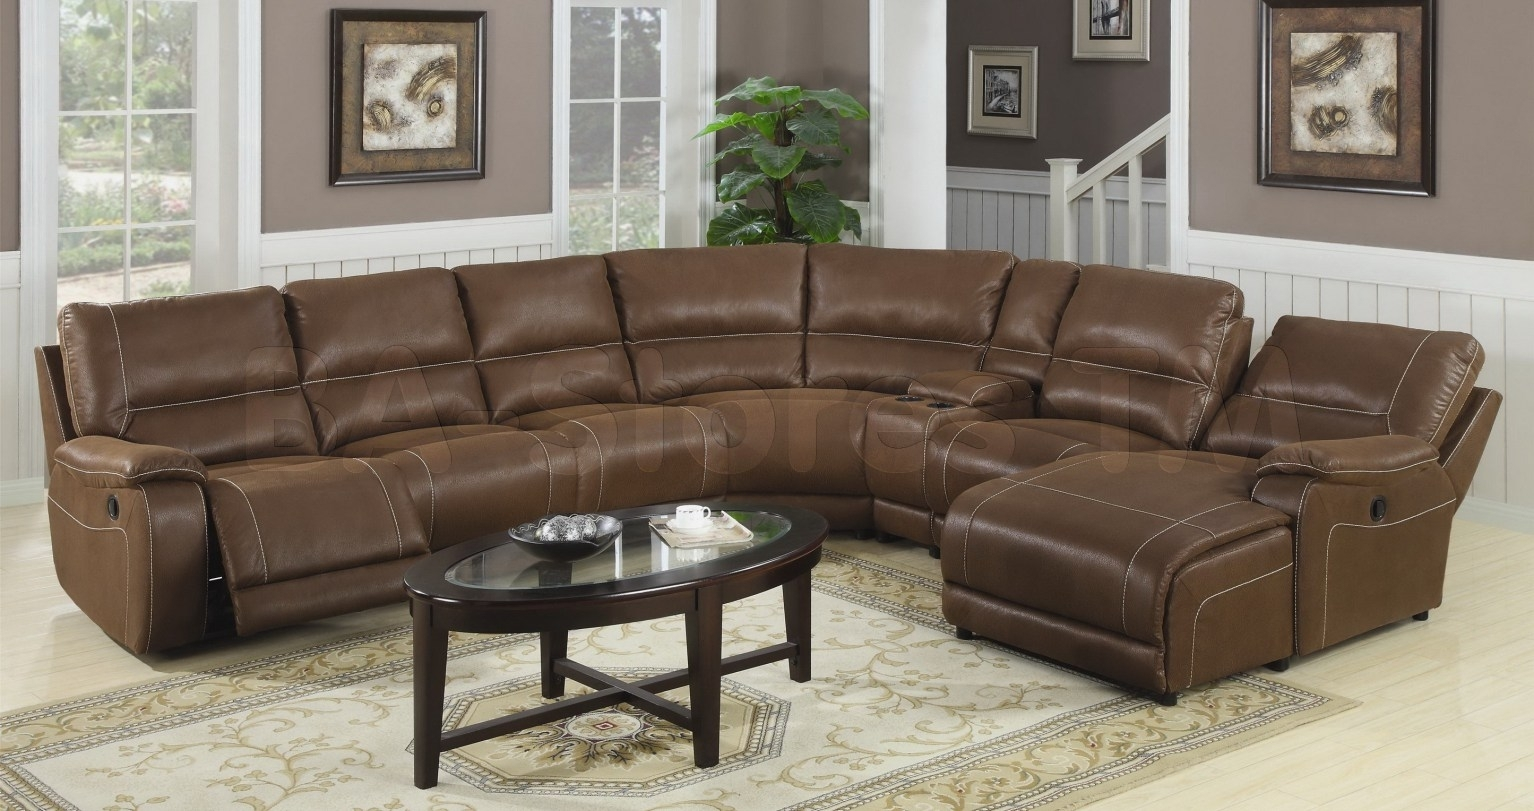 Furniture : Cool Sofas For Sale Excellent Design Ideas 19 Bedroom Regarding Valdosta Ga Sectional Sofas (View 9 of 10)